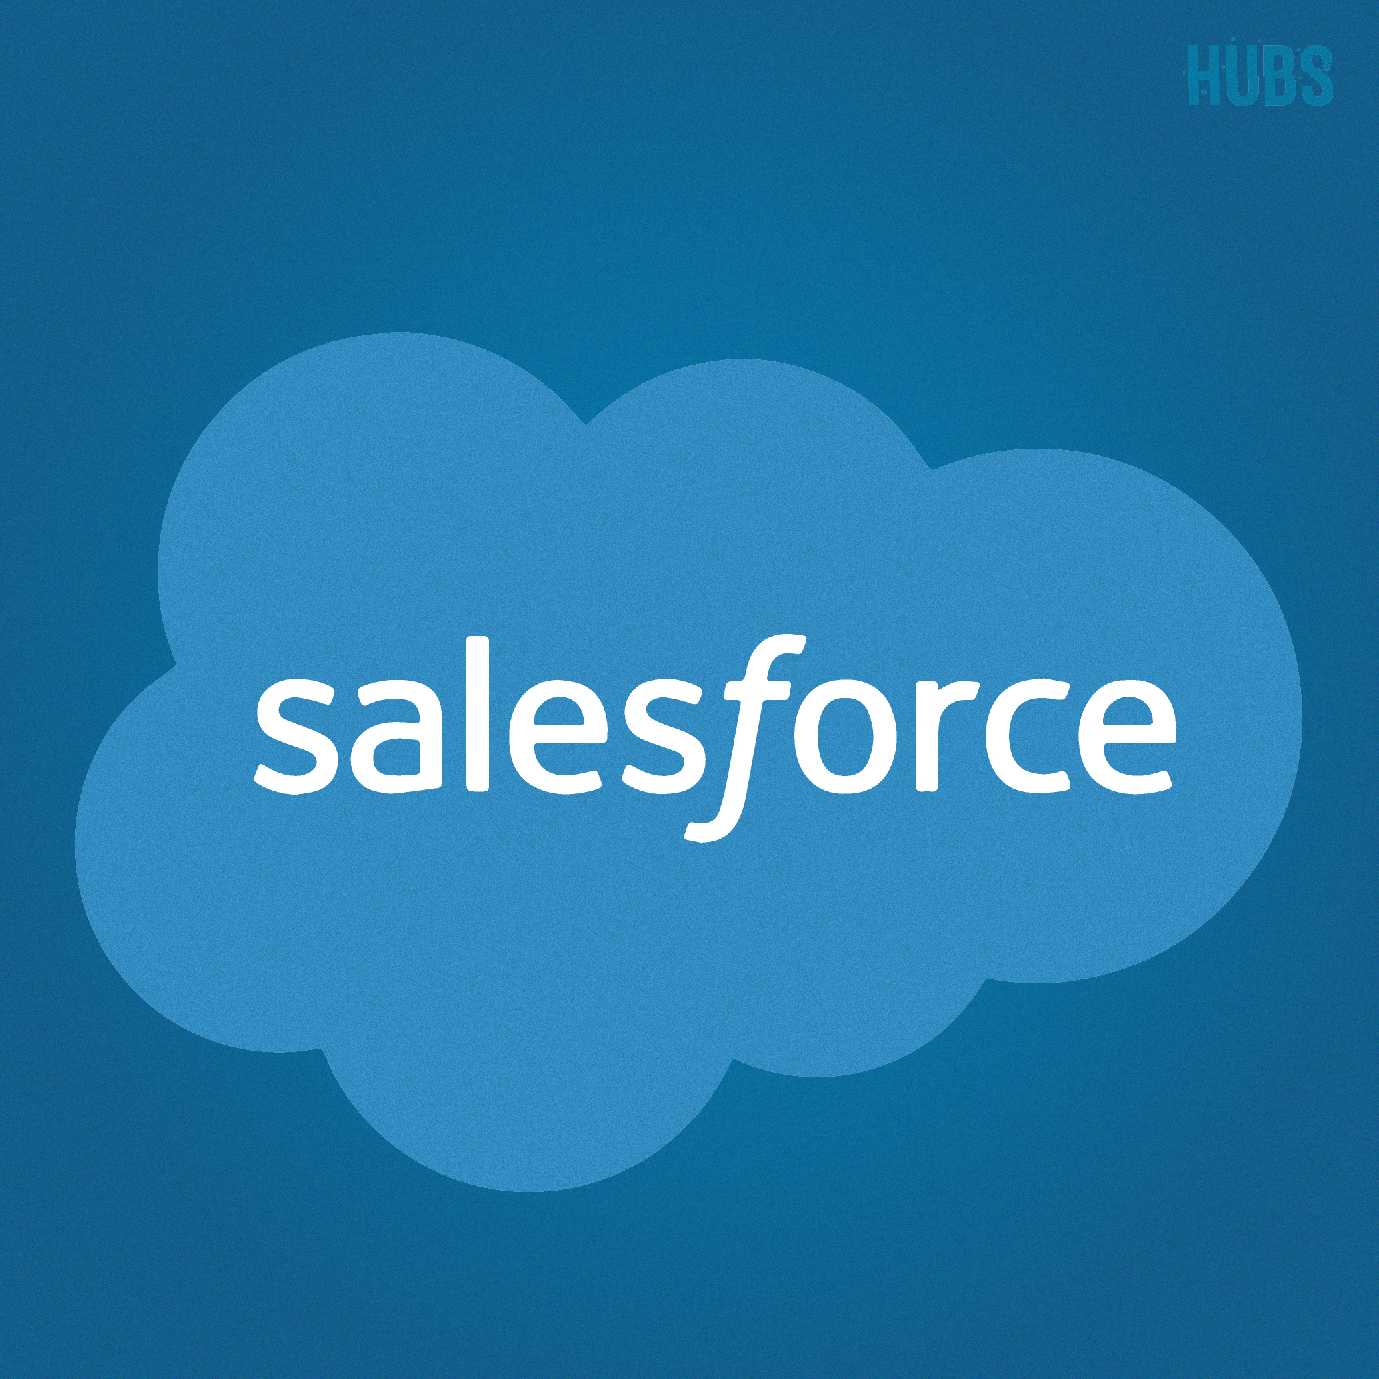 P11-3-crm-salesforce.jpg.jpg